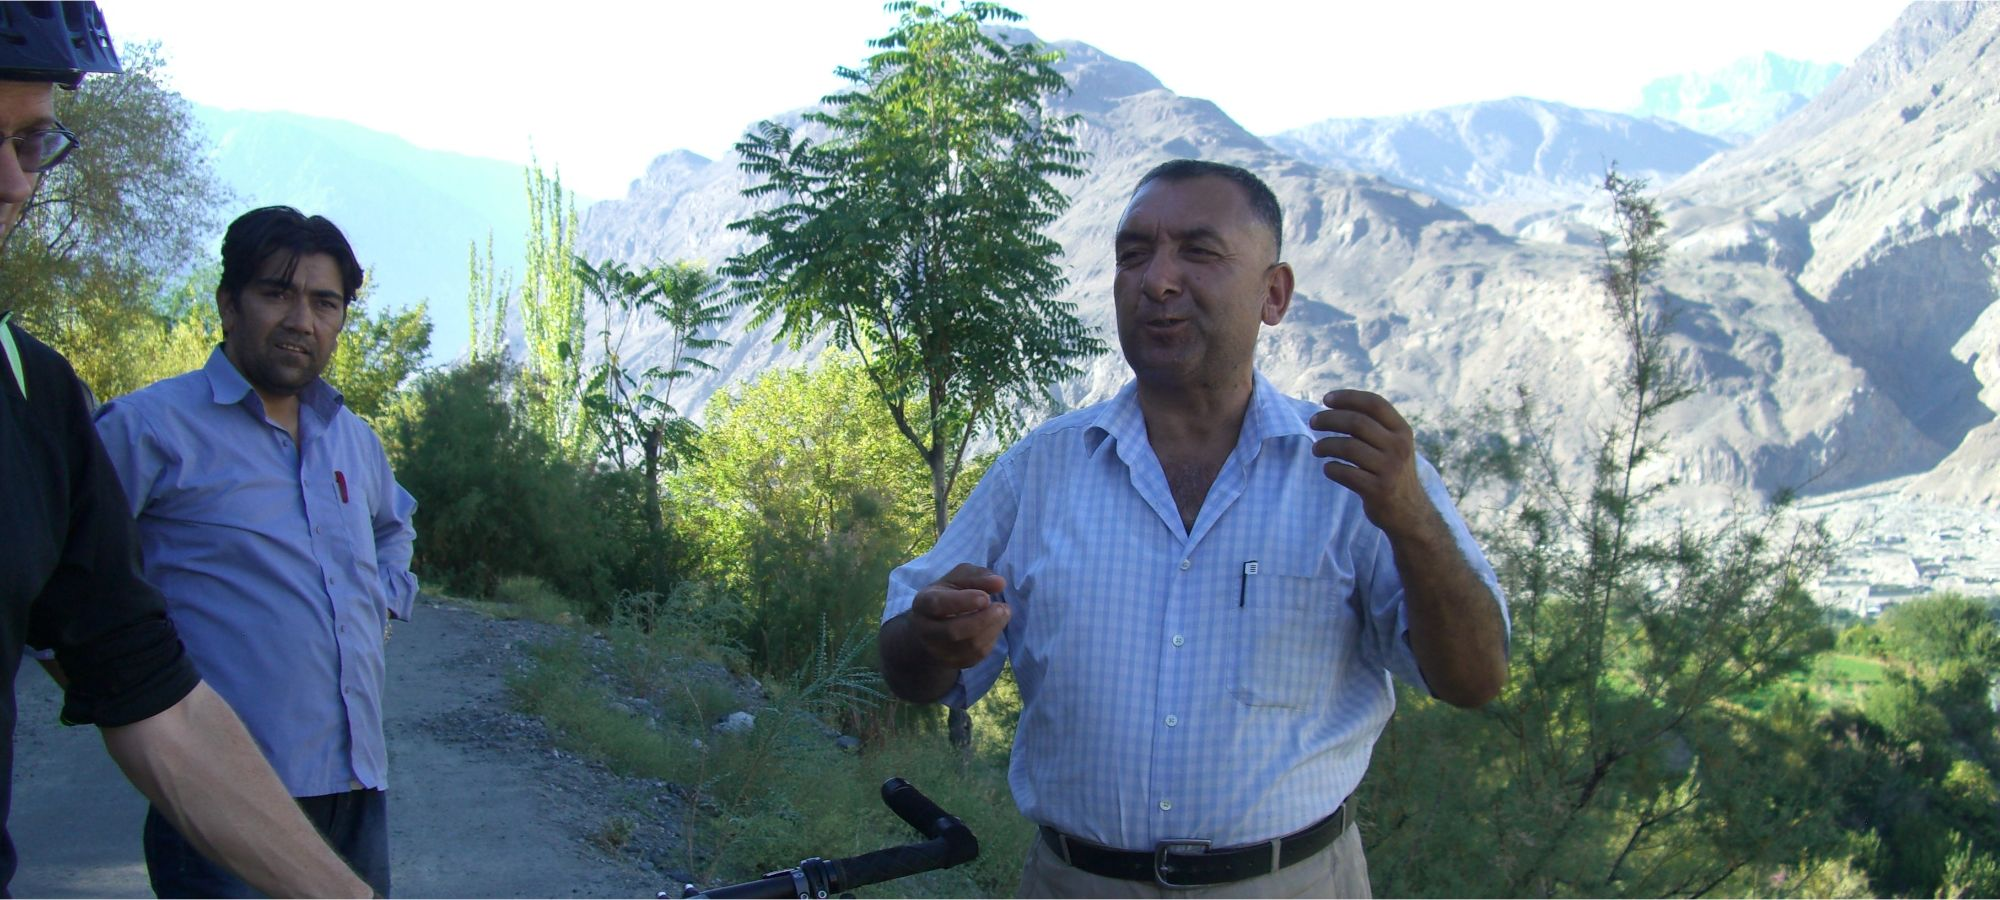 Arman Ali, famous guide from the Hunza